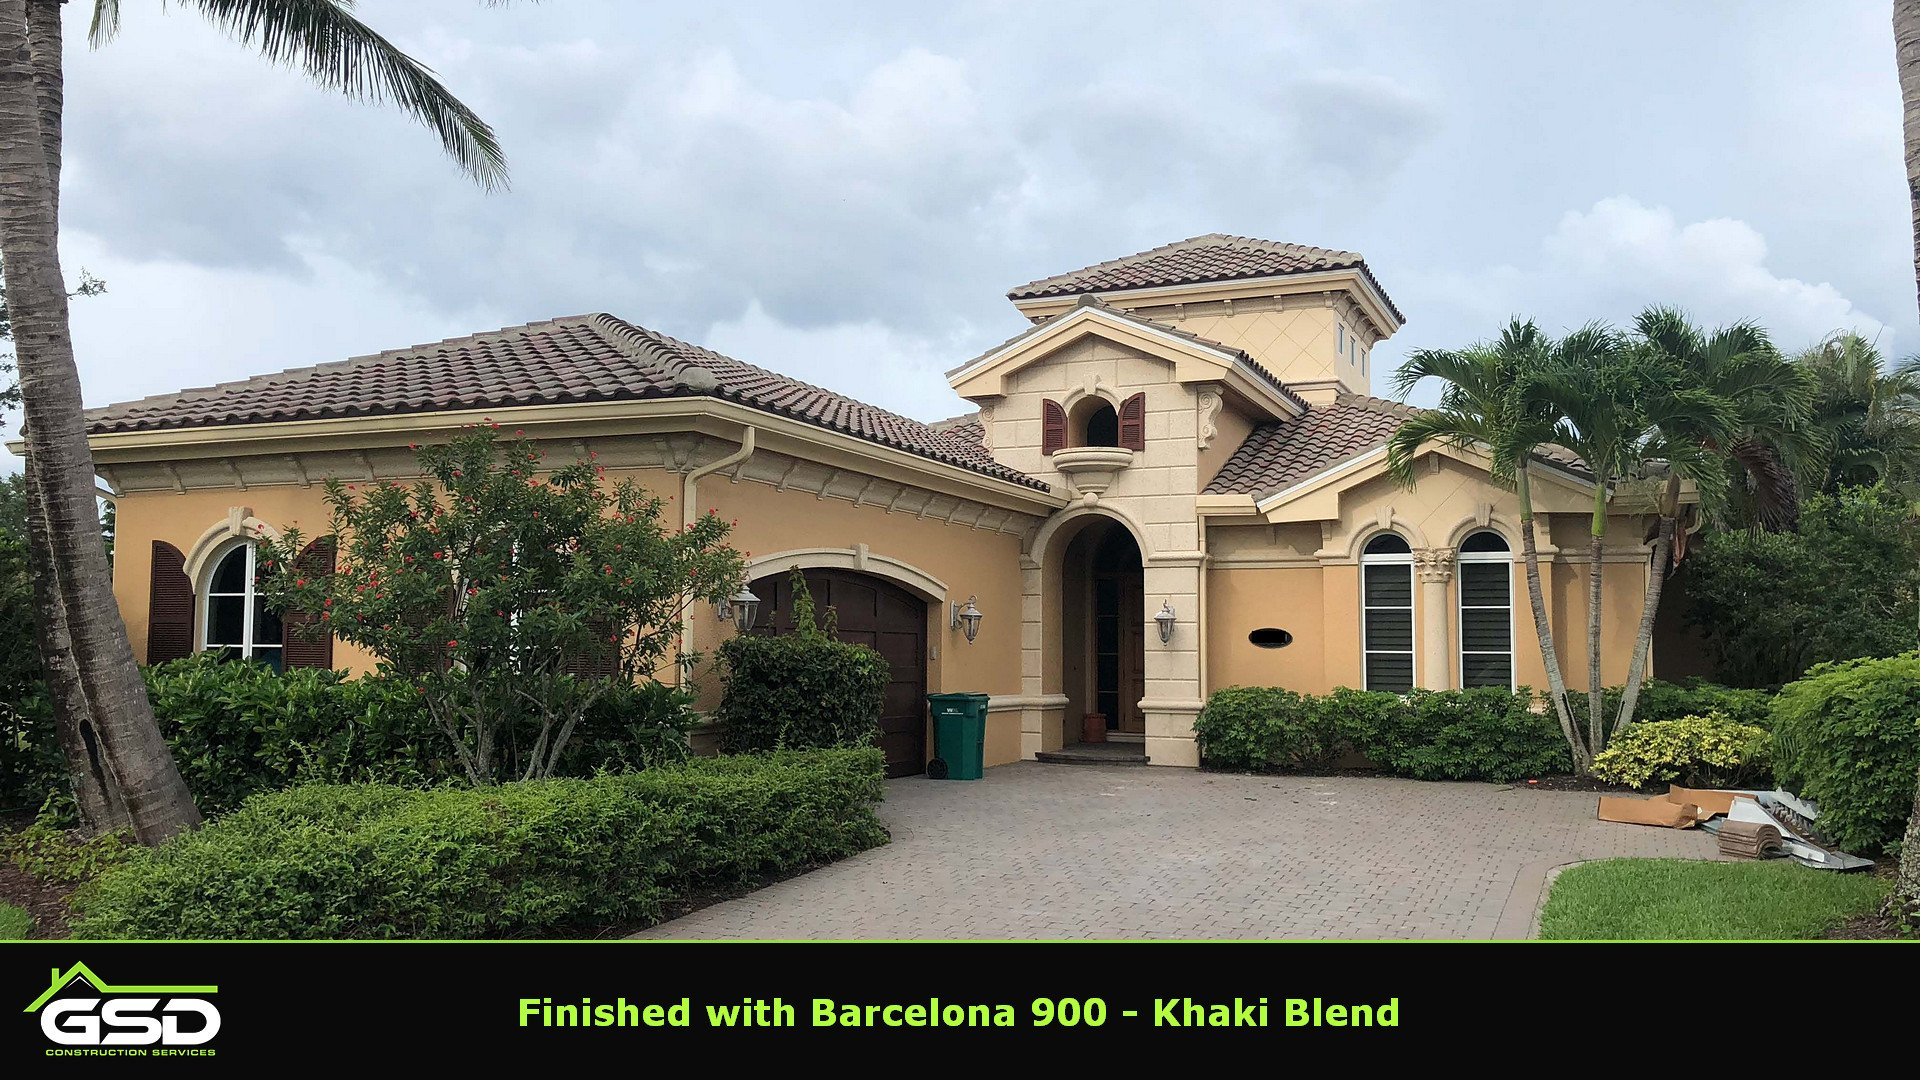 Chiasso Cove Tile Roof Repair Gsd Construction Services Llc